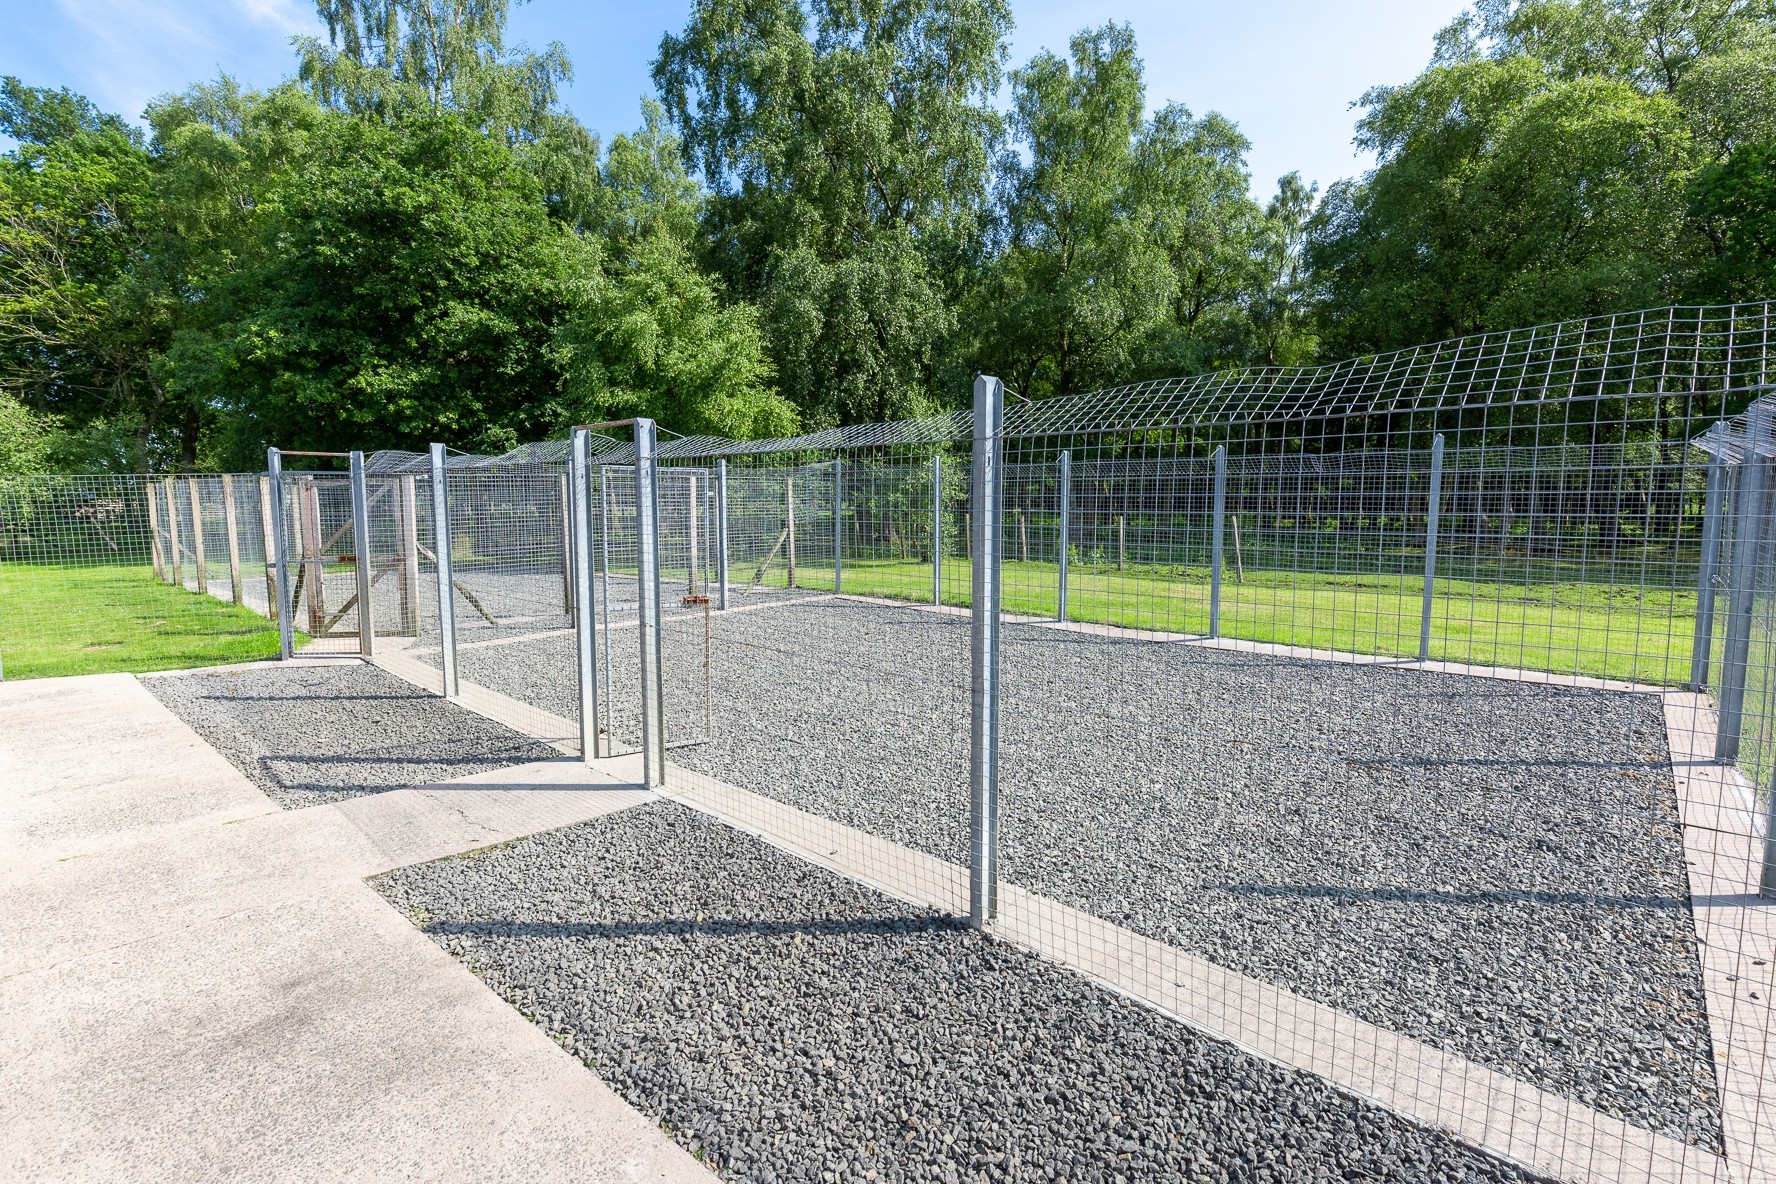 Profitable Boarding Kennels with Superb Family Home in 2.5 acres, Central Scotland - Image 15